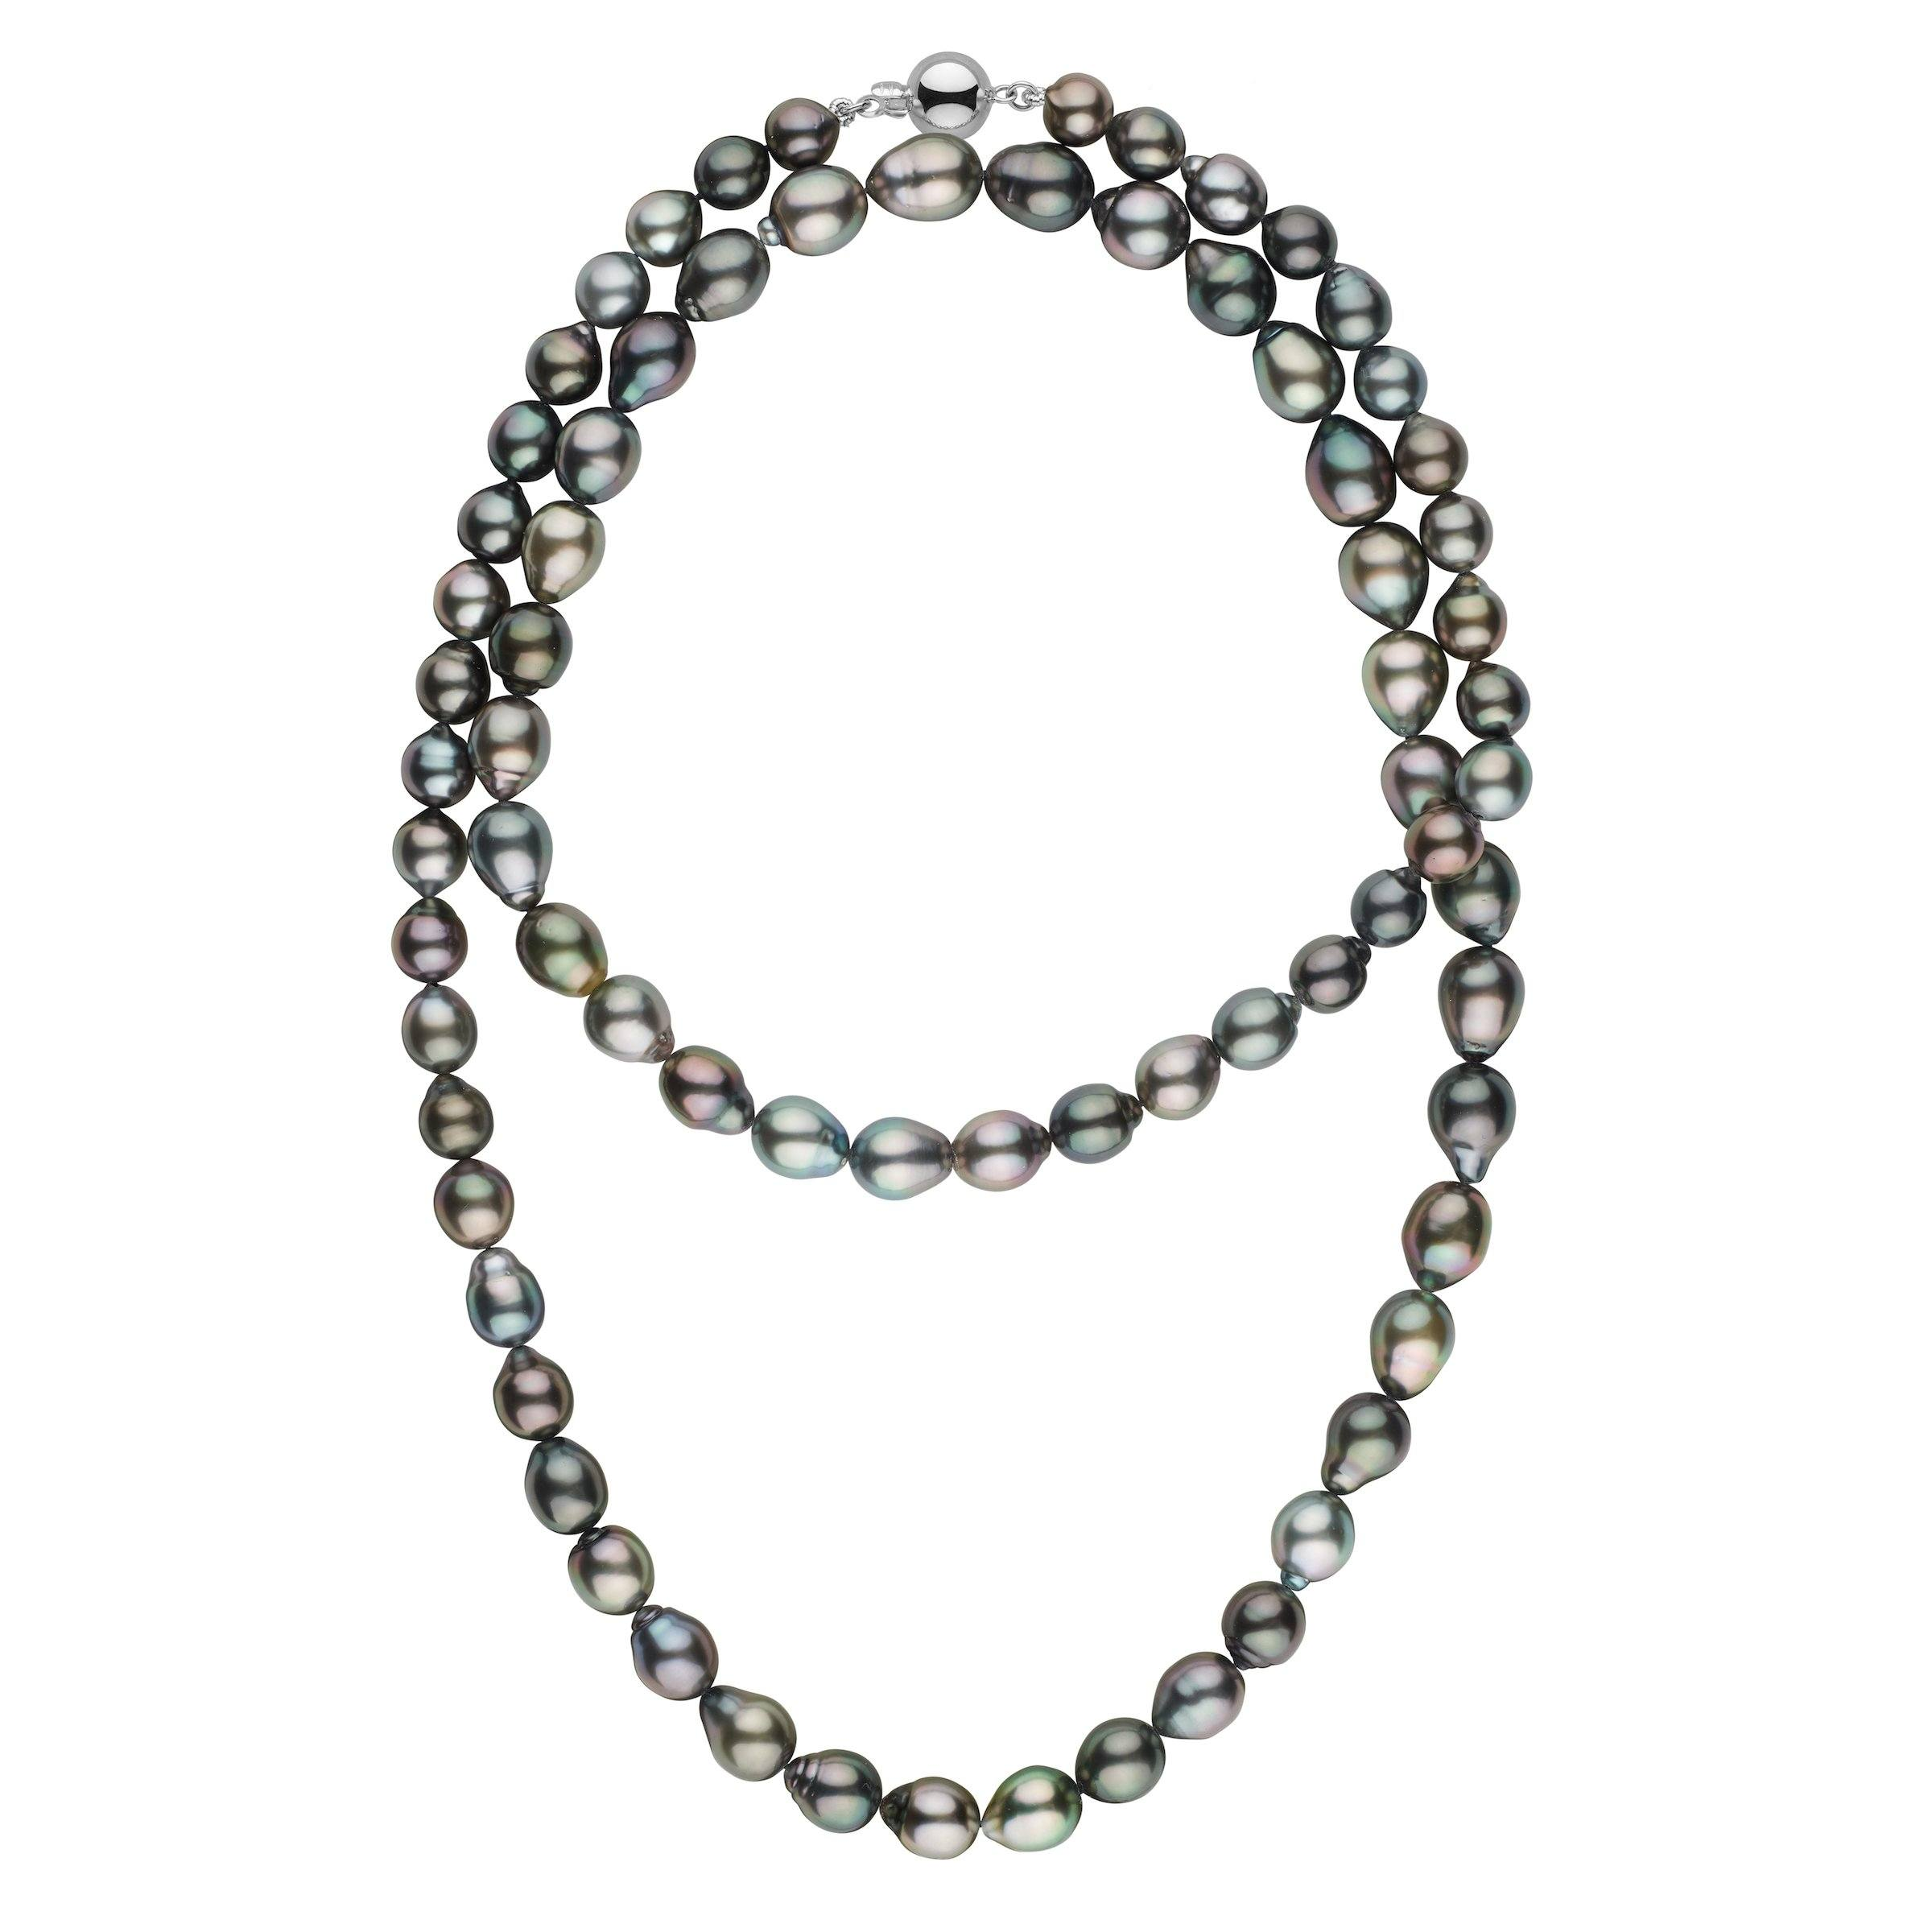 8.5-10.4 mm AAA Tahitian Drop Pearl Necklace - 35 Inches